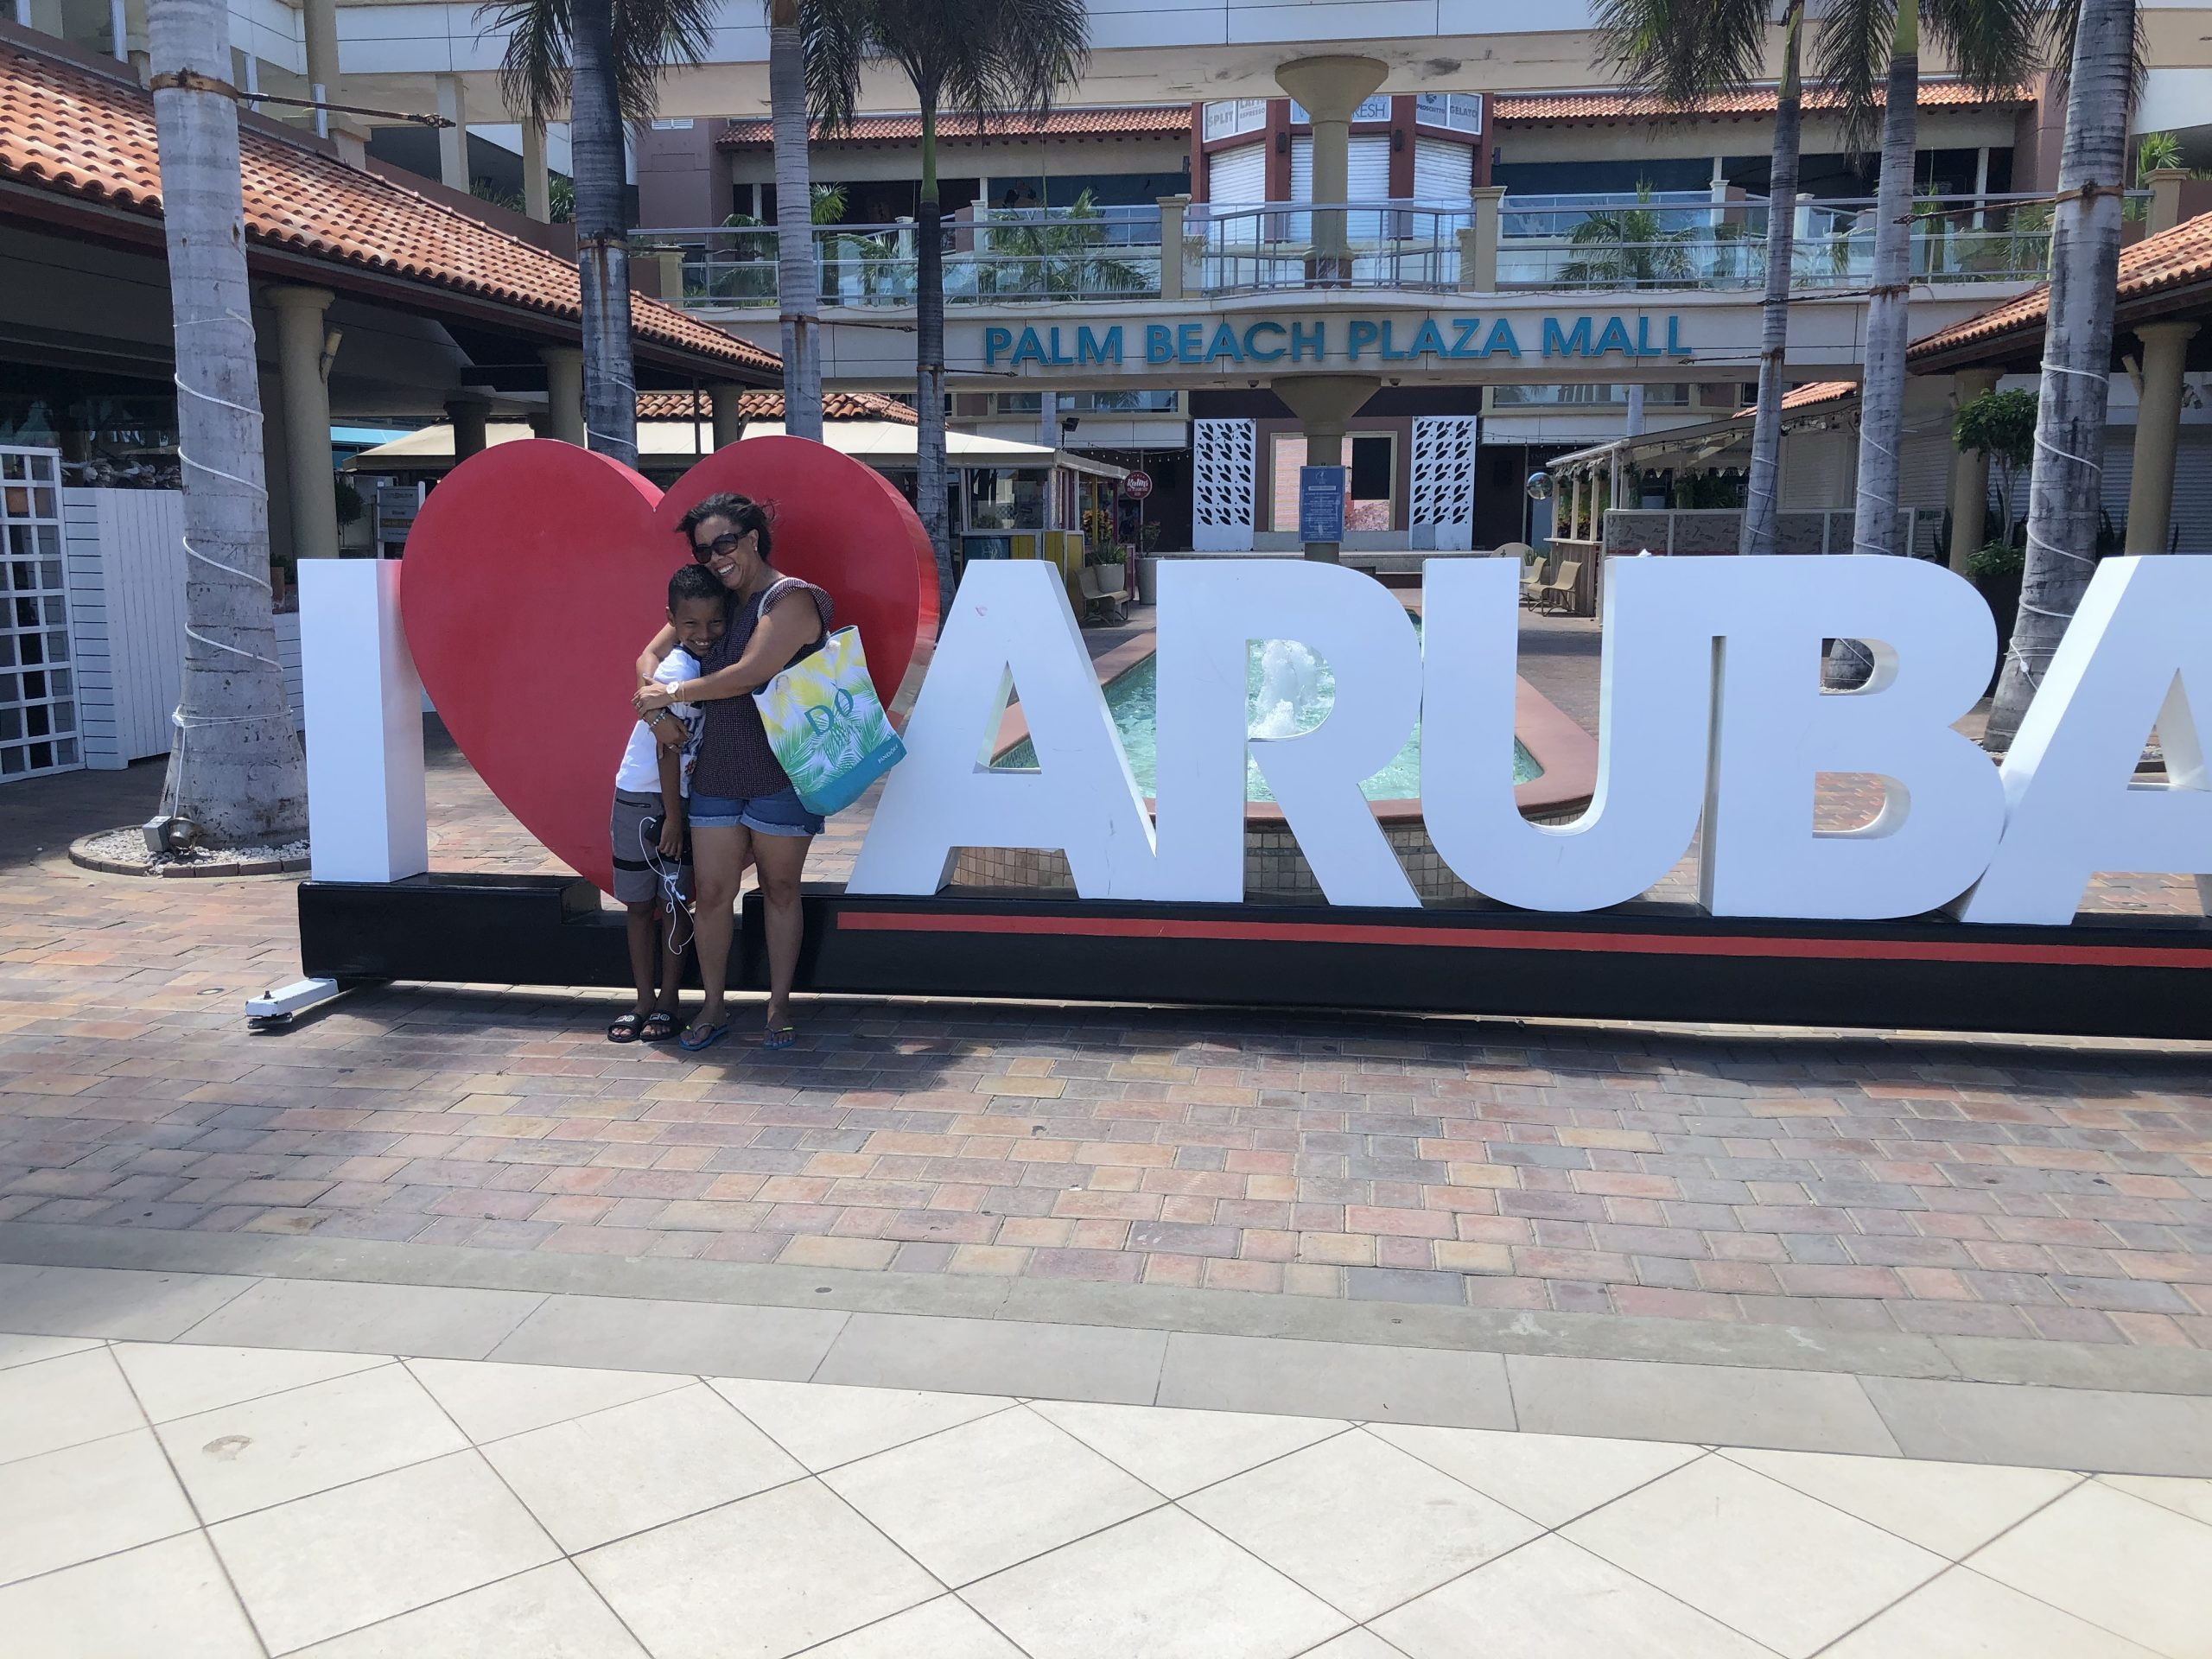 Our First Vacation Destination: Aruba 🇦🇼 part 2